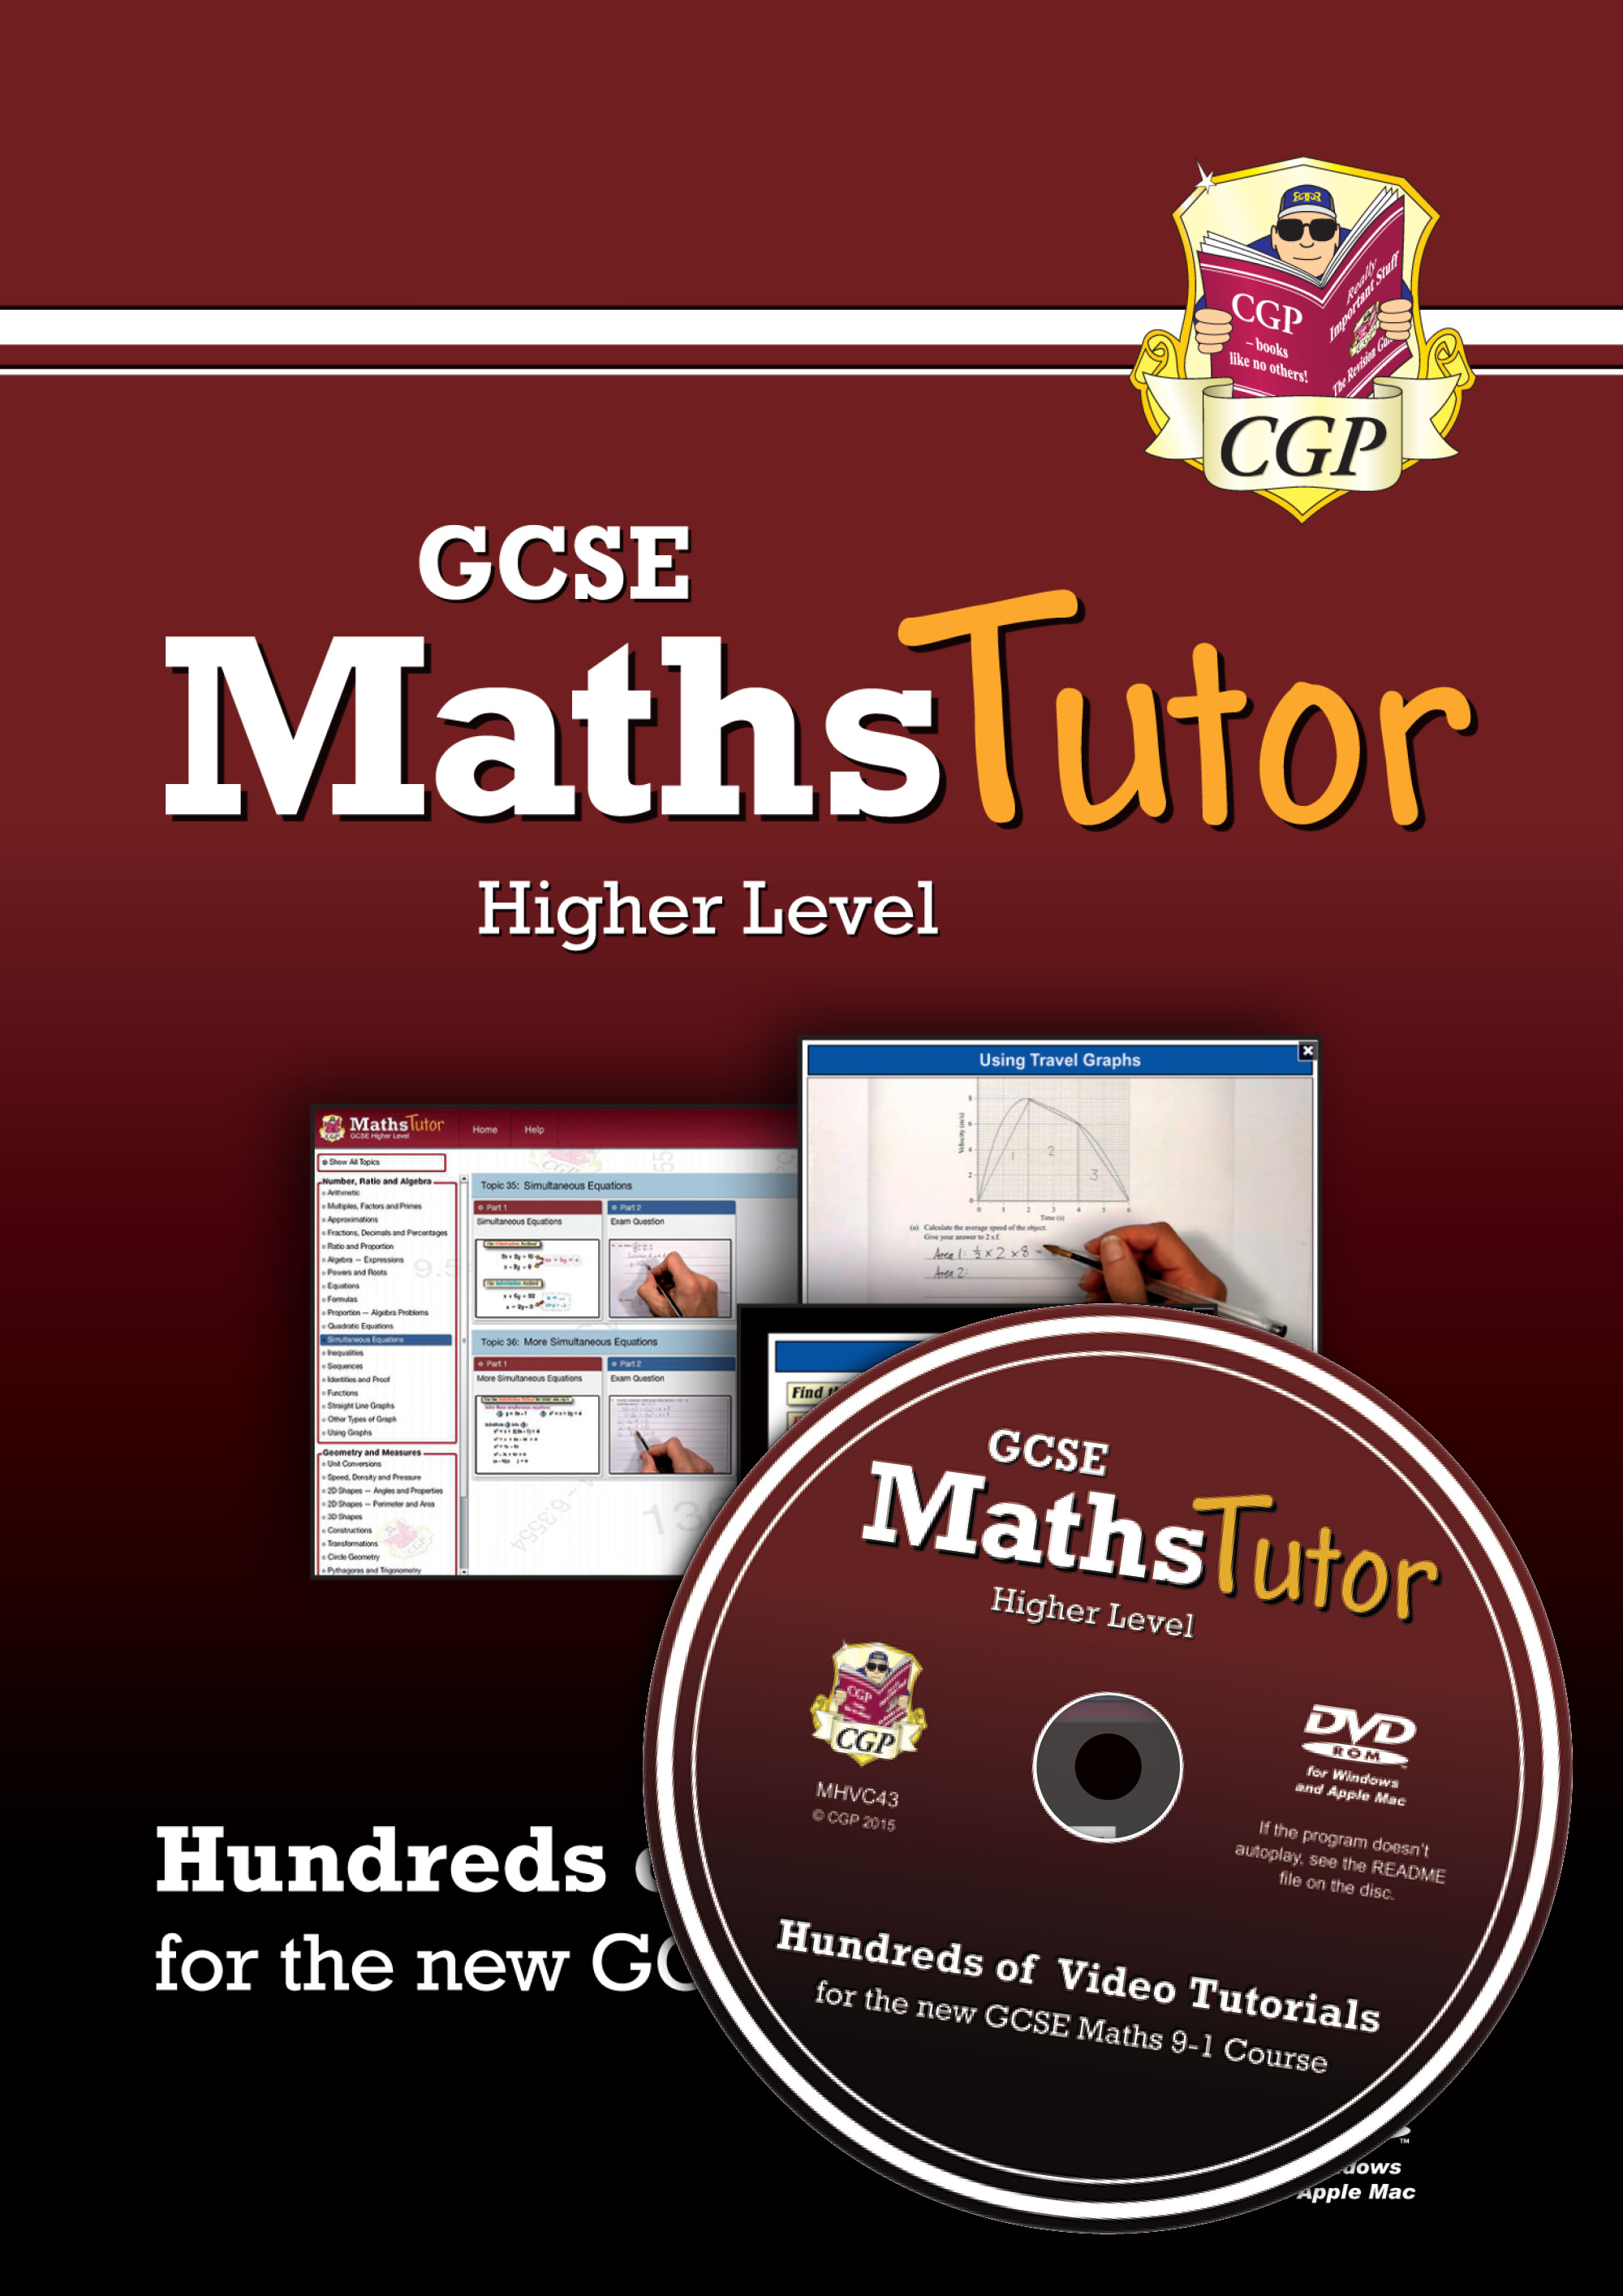 MHVC43 - MathsTutor: GCSE Maths Video Tutorials (Grade 9-1 Course) Higher - DVD-ROM for PC/Mac